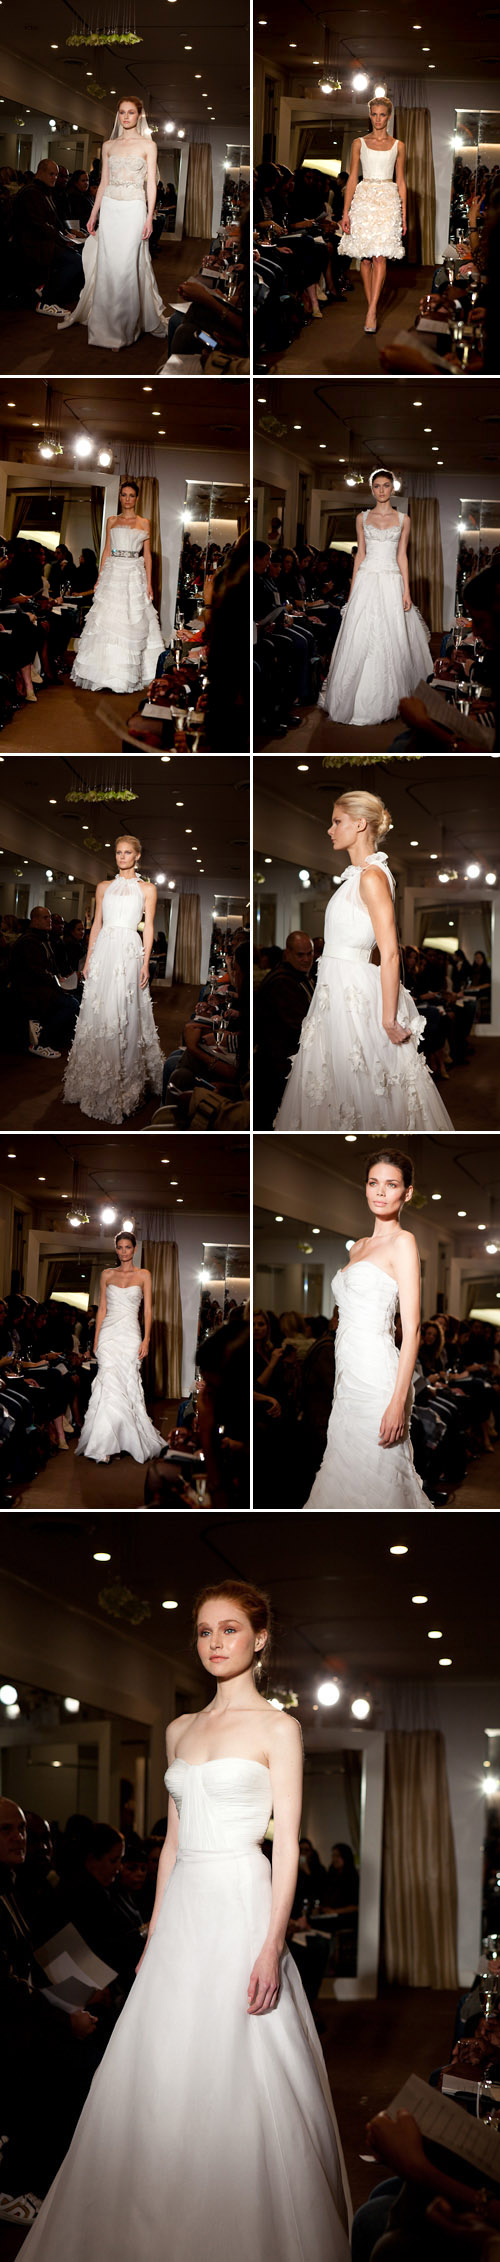 Kevan Hall Spring 2011 bridal collection, beautiful spring wedding dresses from top red carpet designer, images by Junebug Weddings